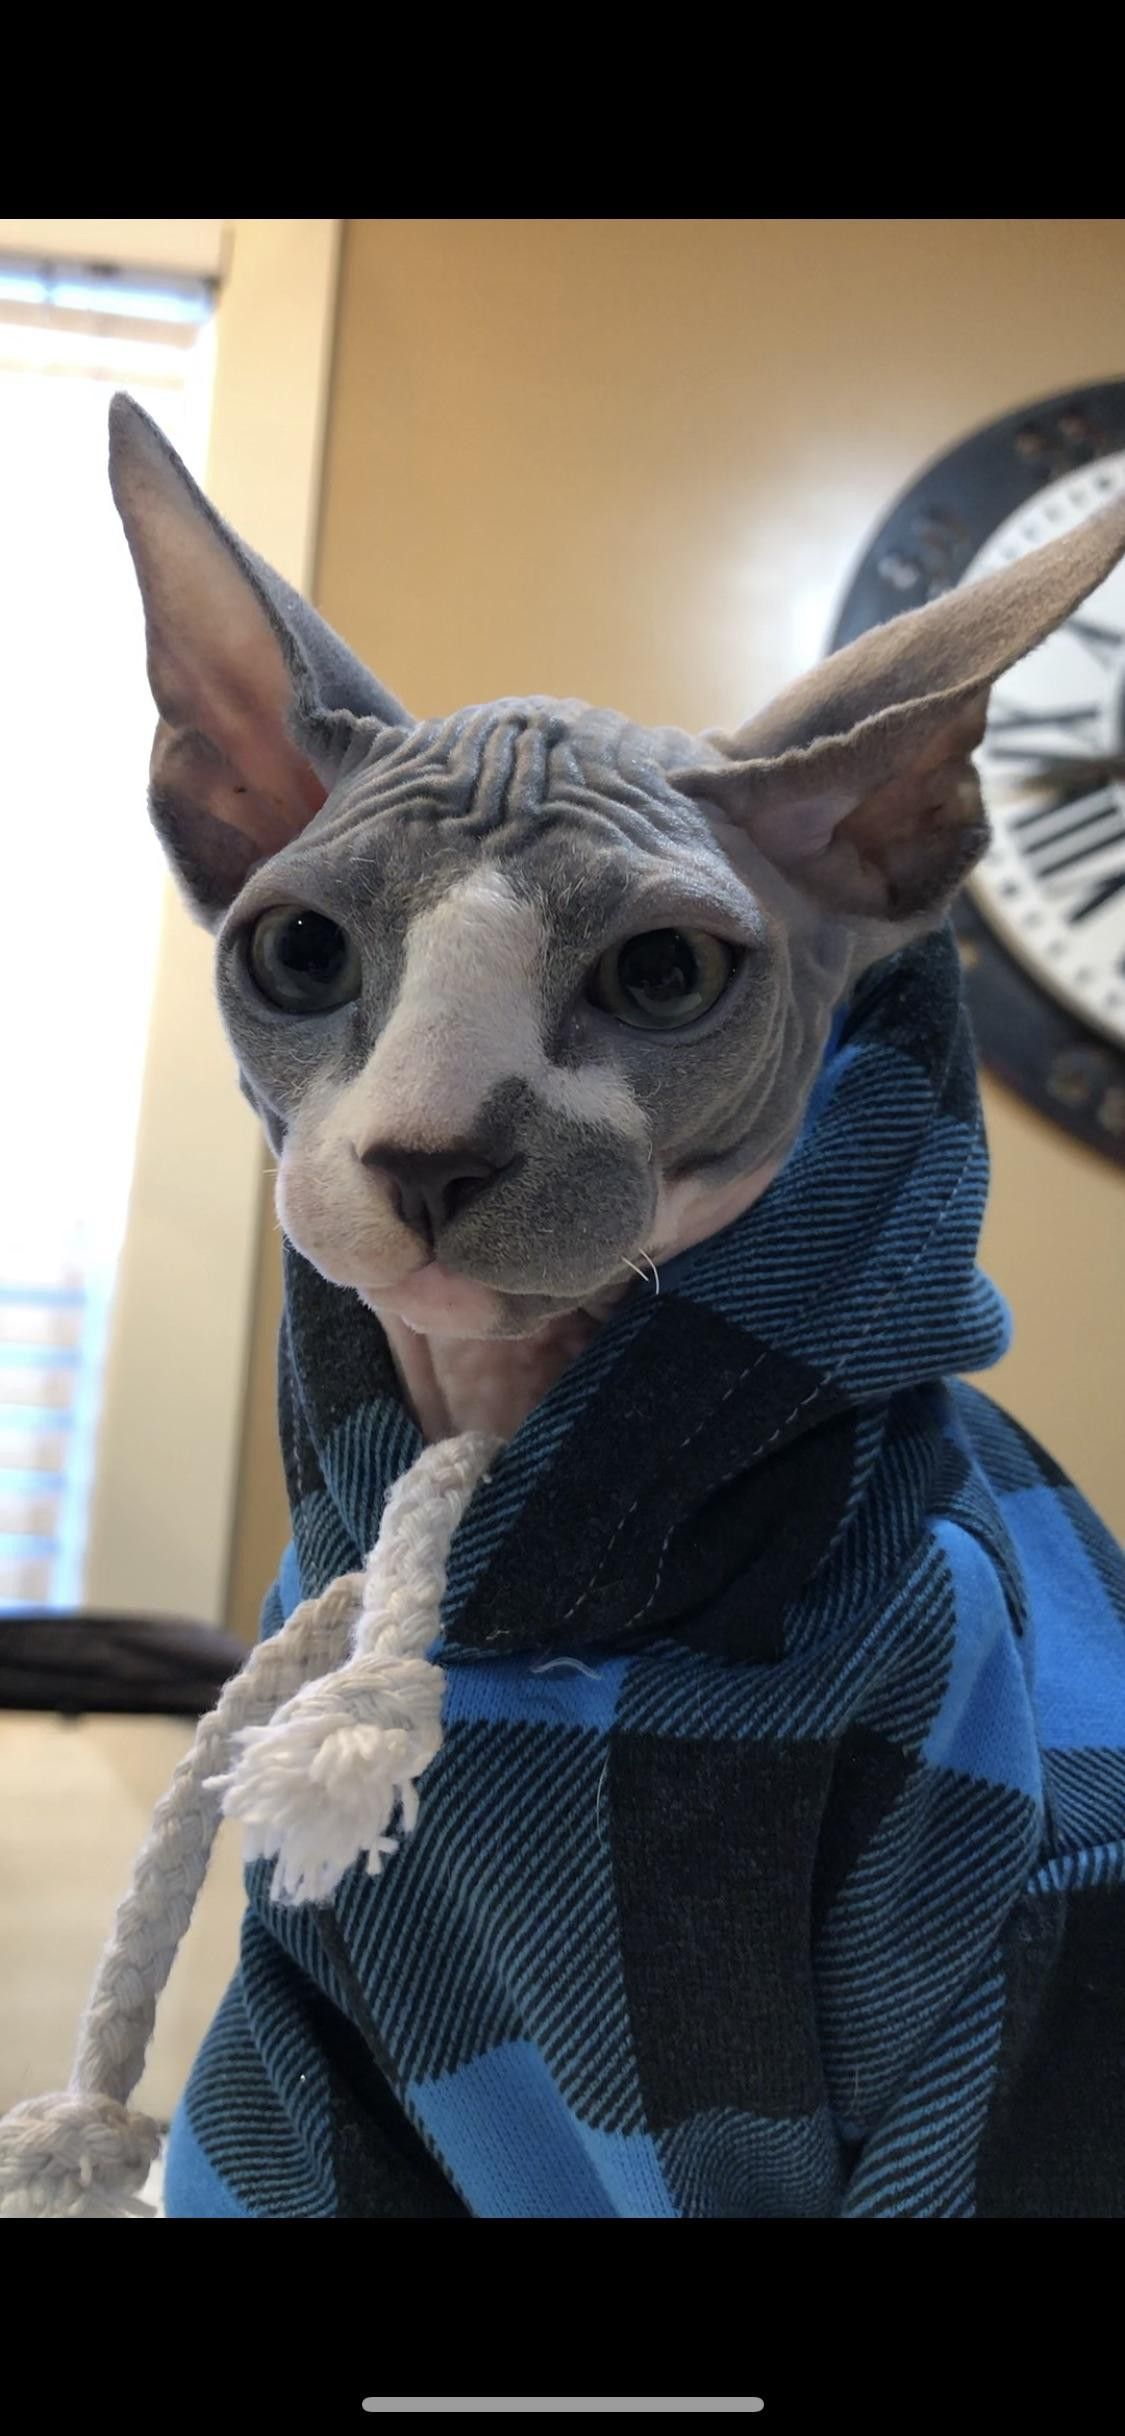 Sphynx Kitty Spinx cat, Devon rex cats, Hairless cat sphynx